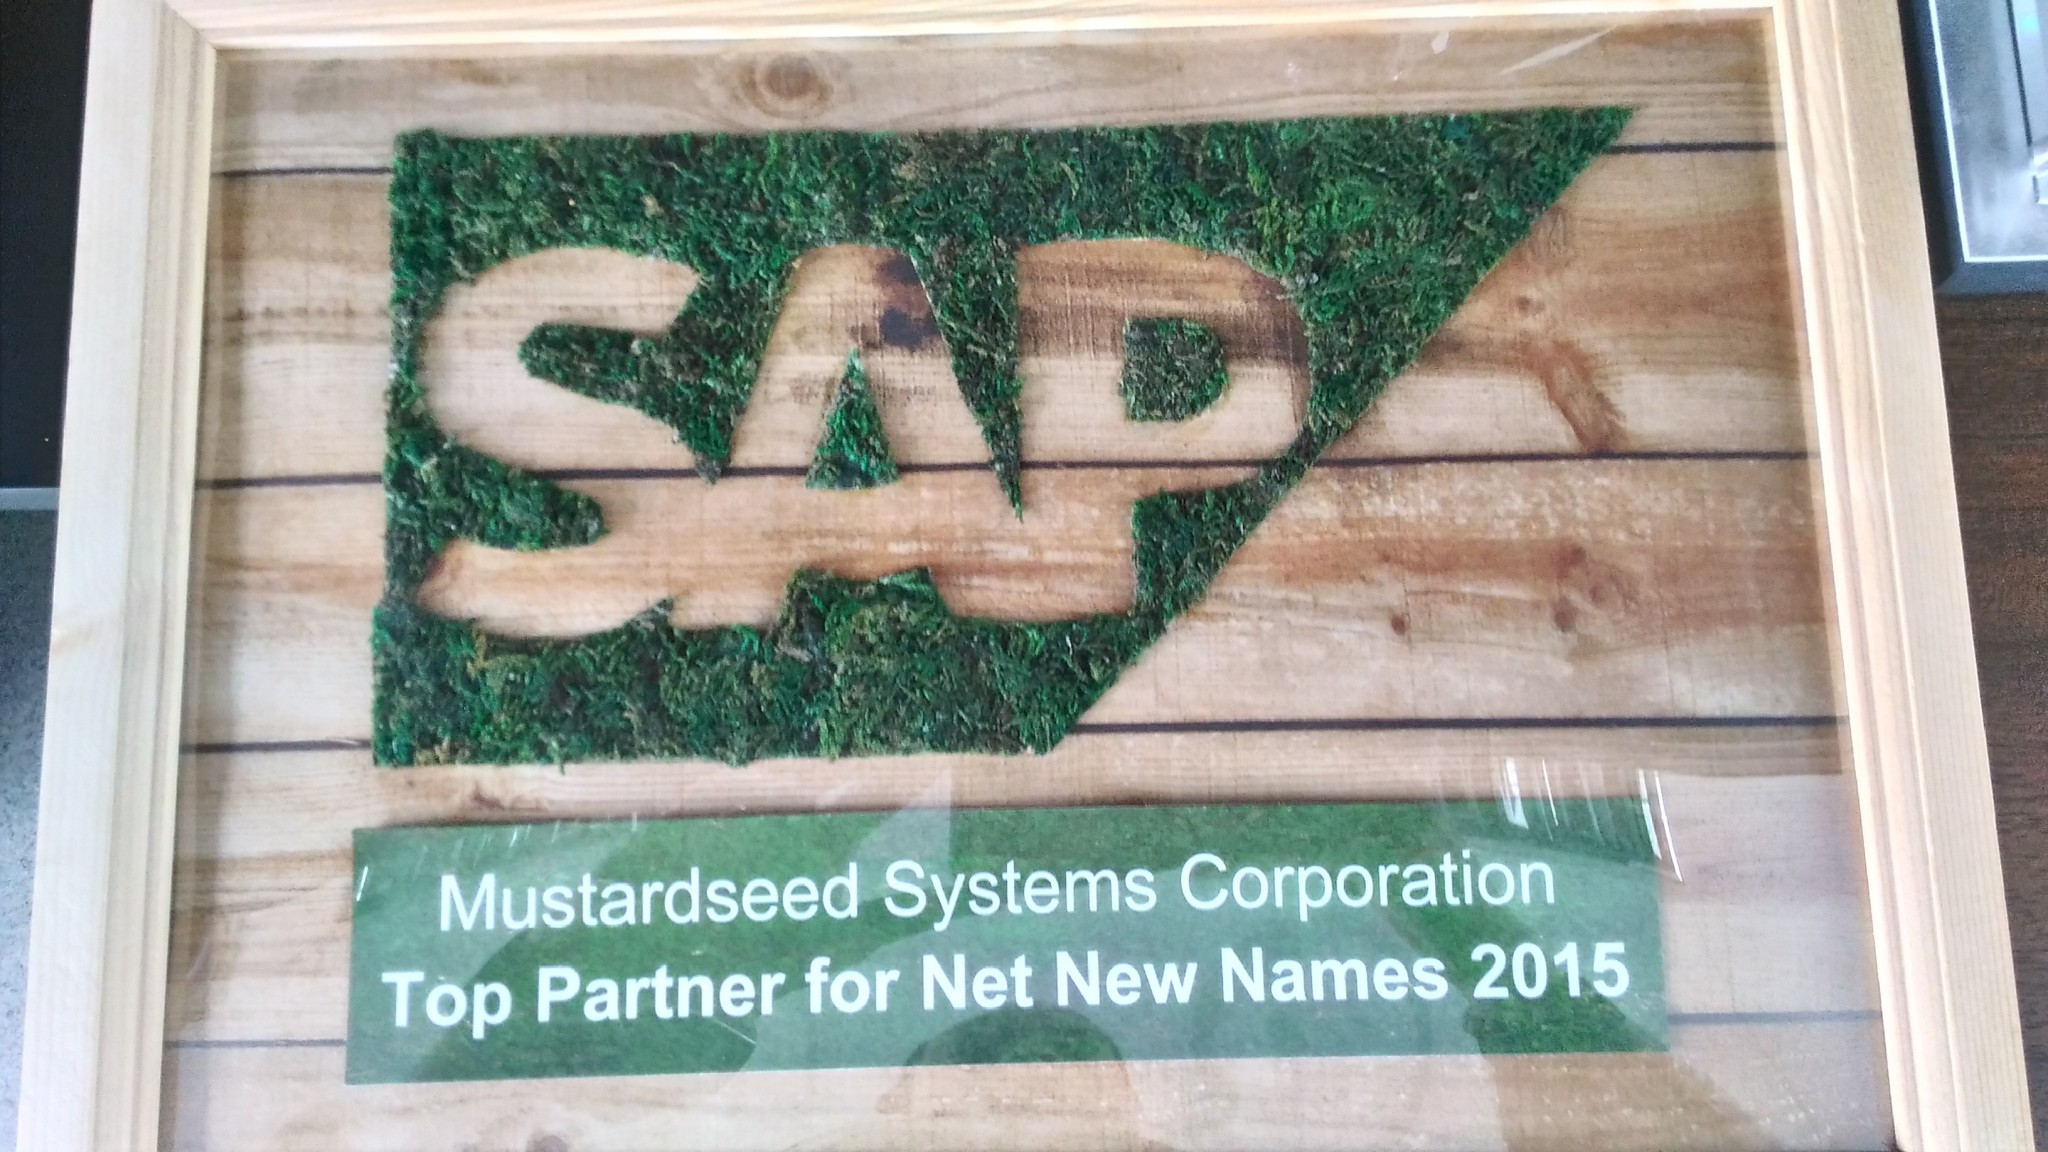 SAP Philippines by Mustard Seed is top awarded partner in Asia Pacific